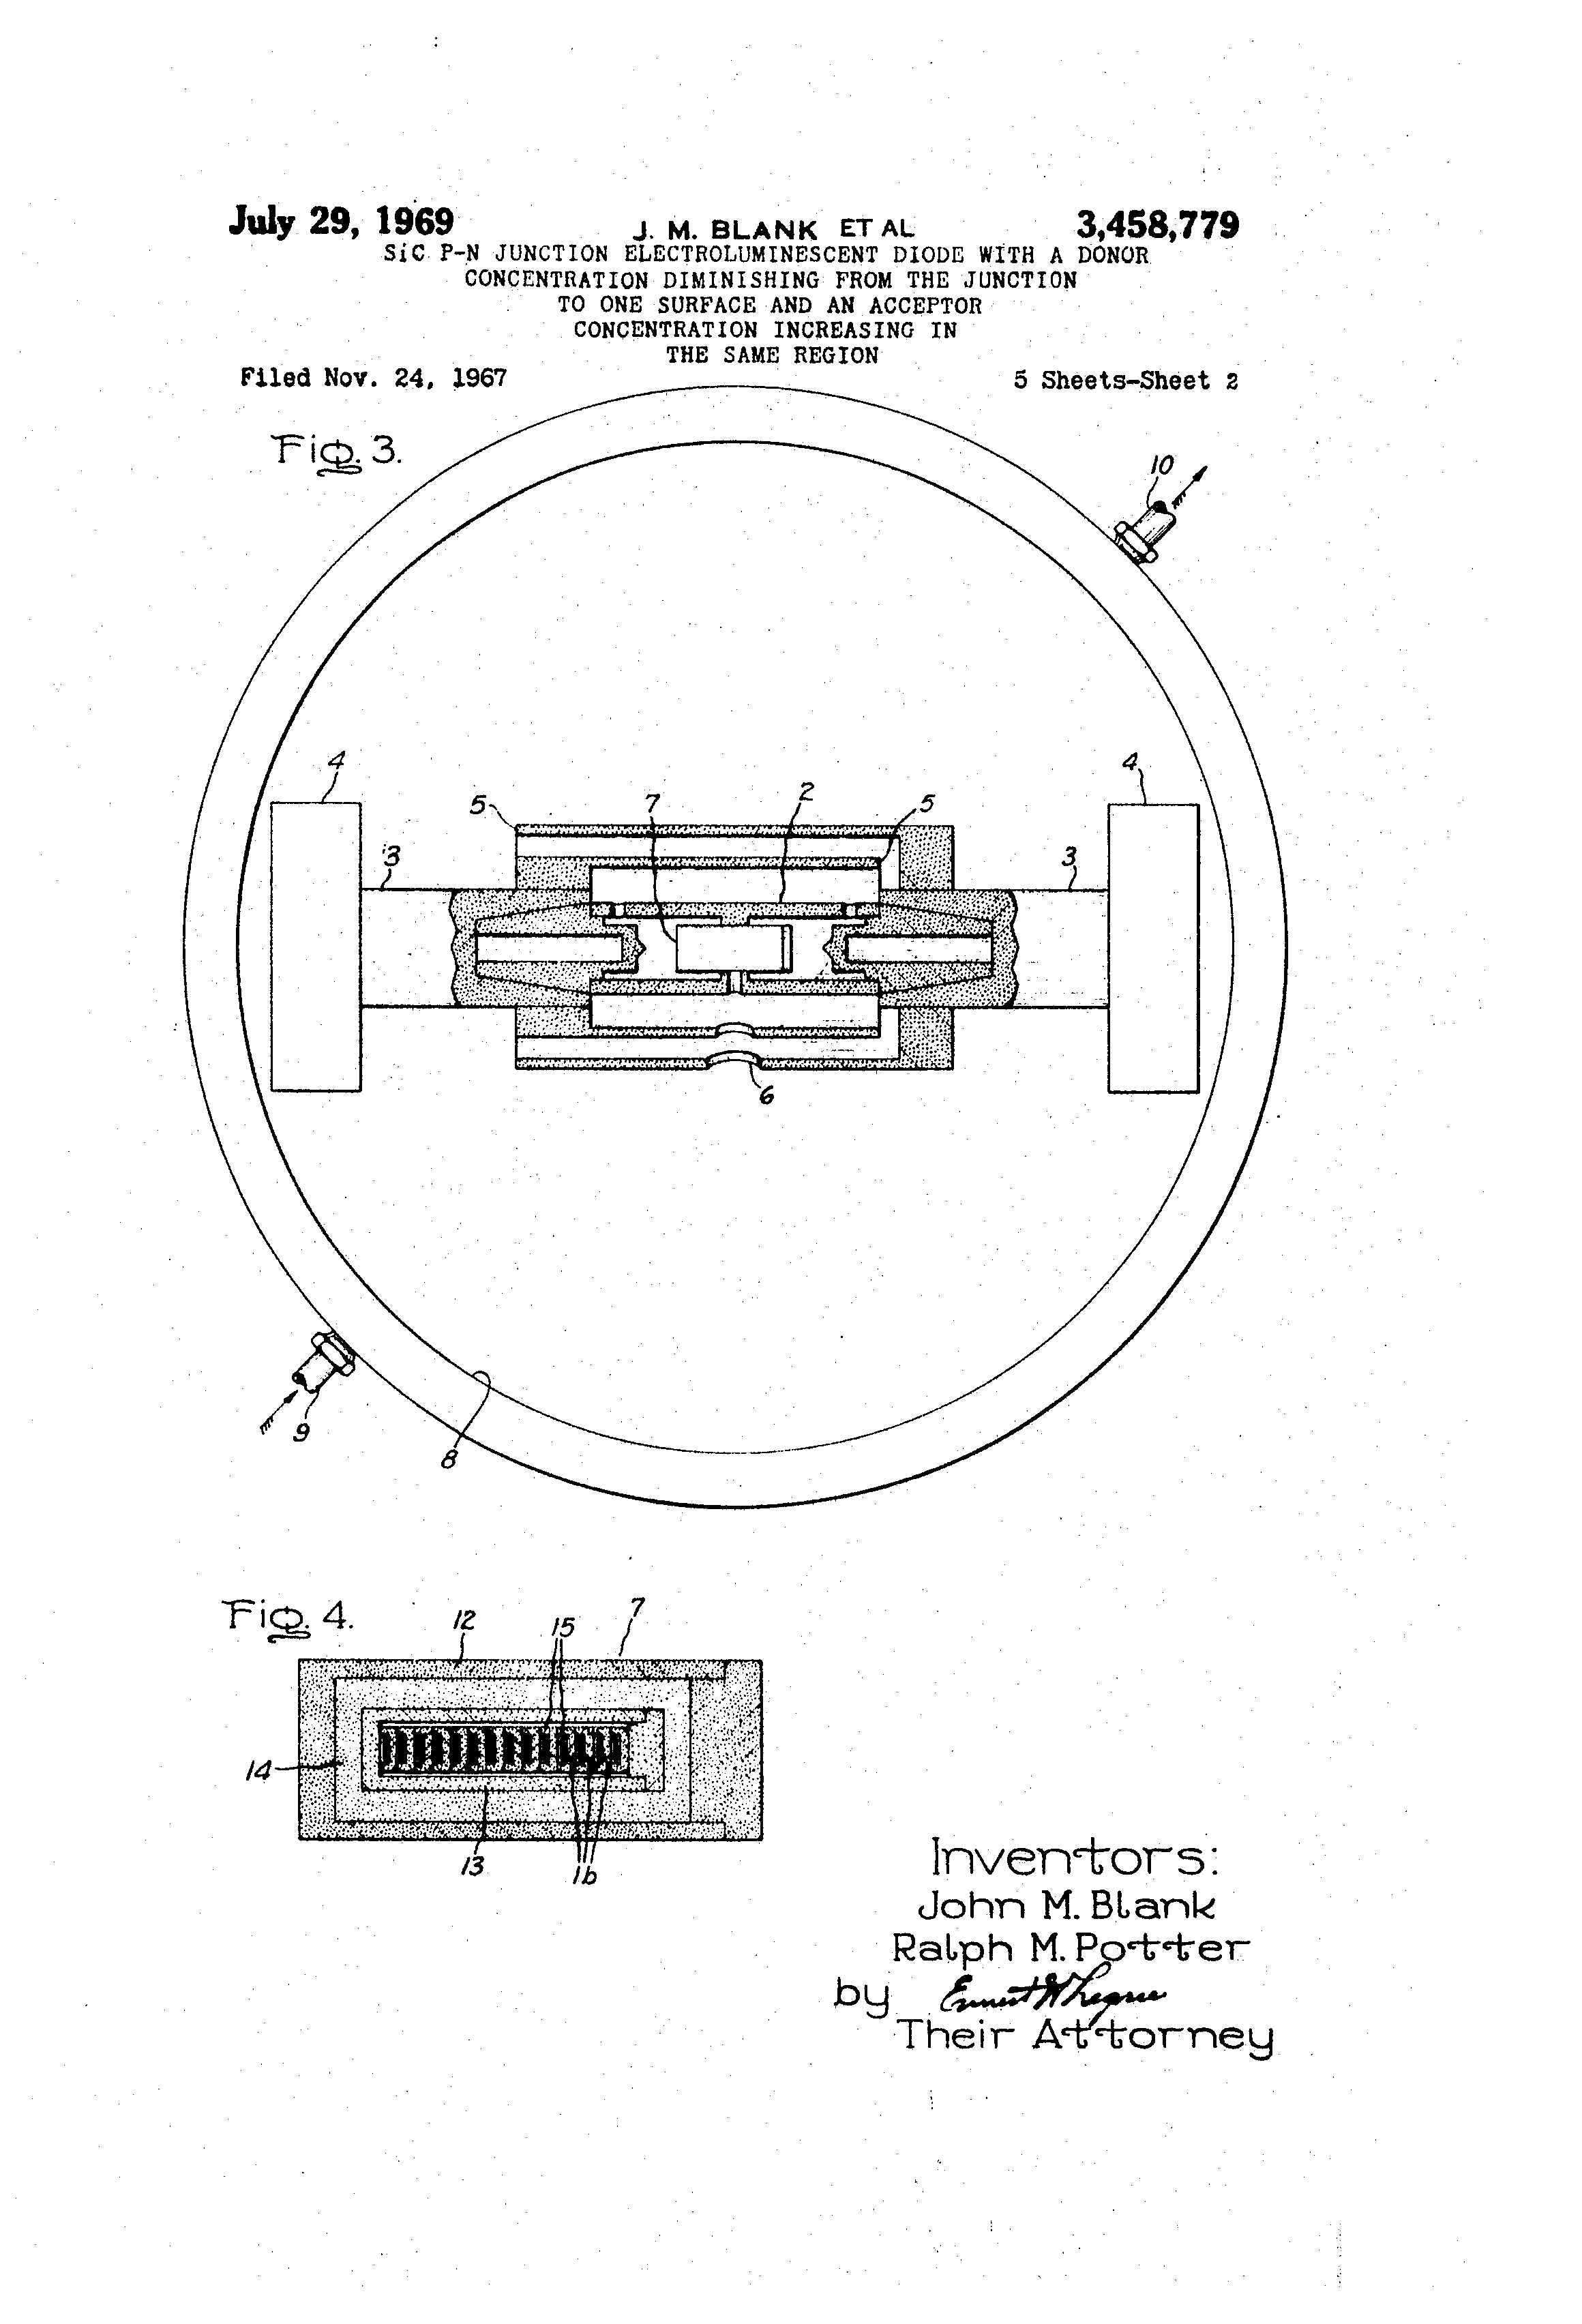 Patent Us3458779 Sic P N Junction Electroluminescent Diode With A Pn And Its Characteristics Drawing